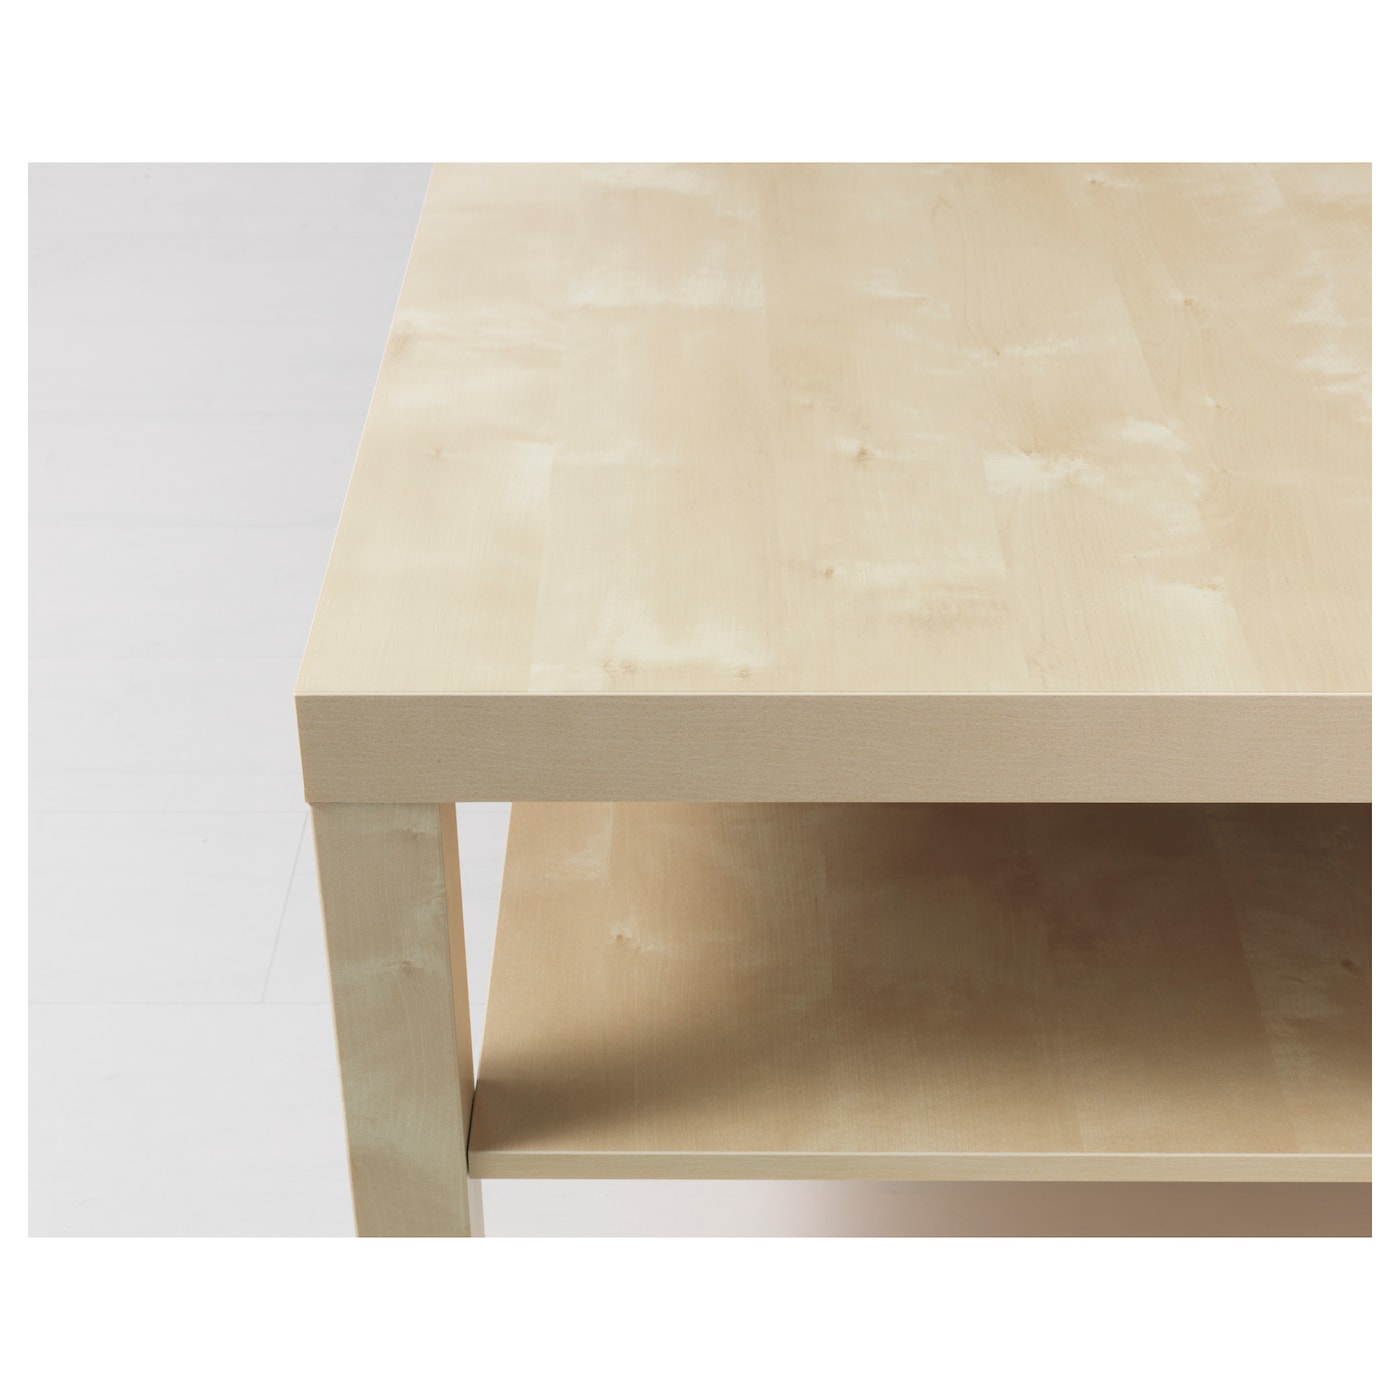 Lack coffee table birch effect 118x78 cm ikea - Table basse ikea avec tiroir ...